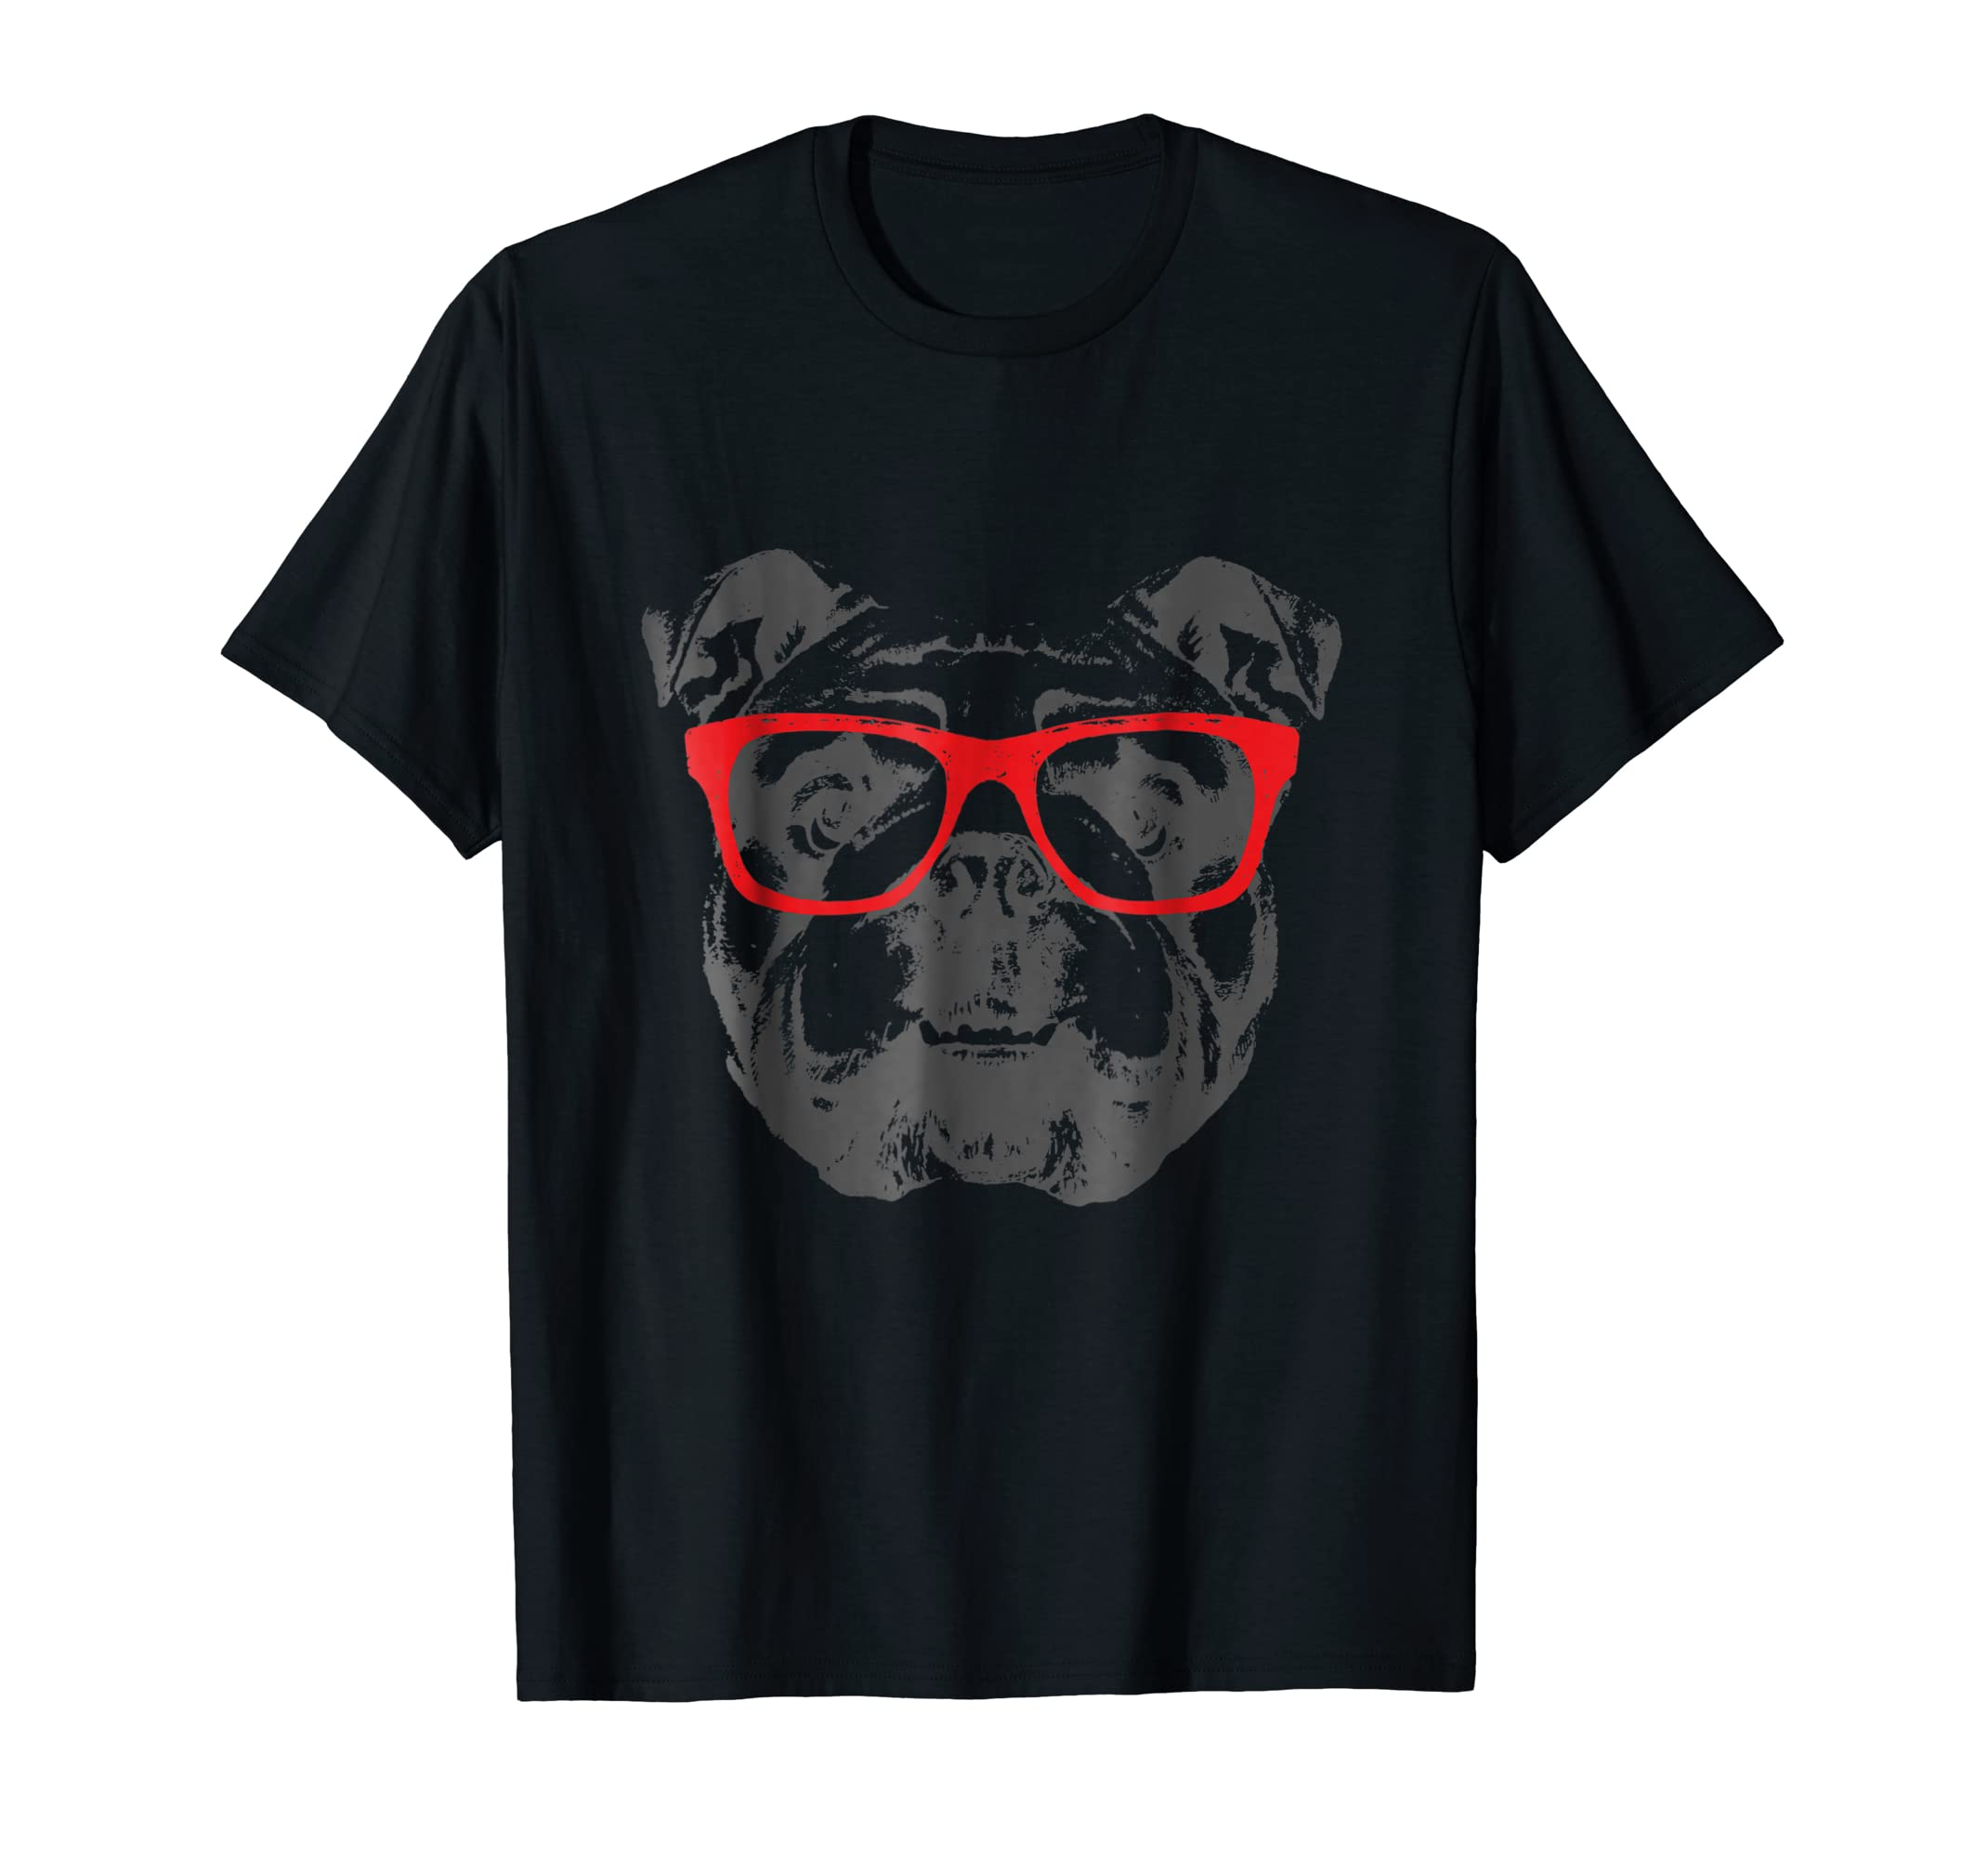 English Bulldog T-Shirt Design Red Glasses Nice Tee-Men's T-Shirt-Black